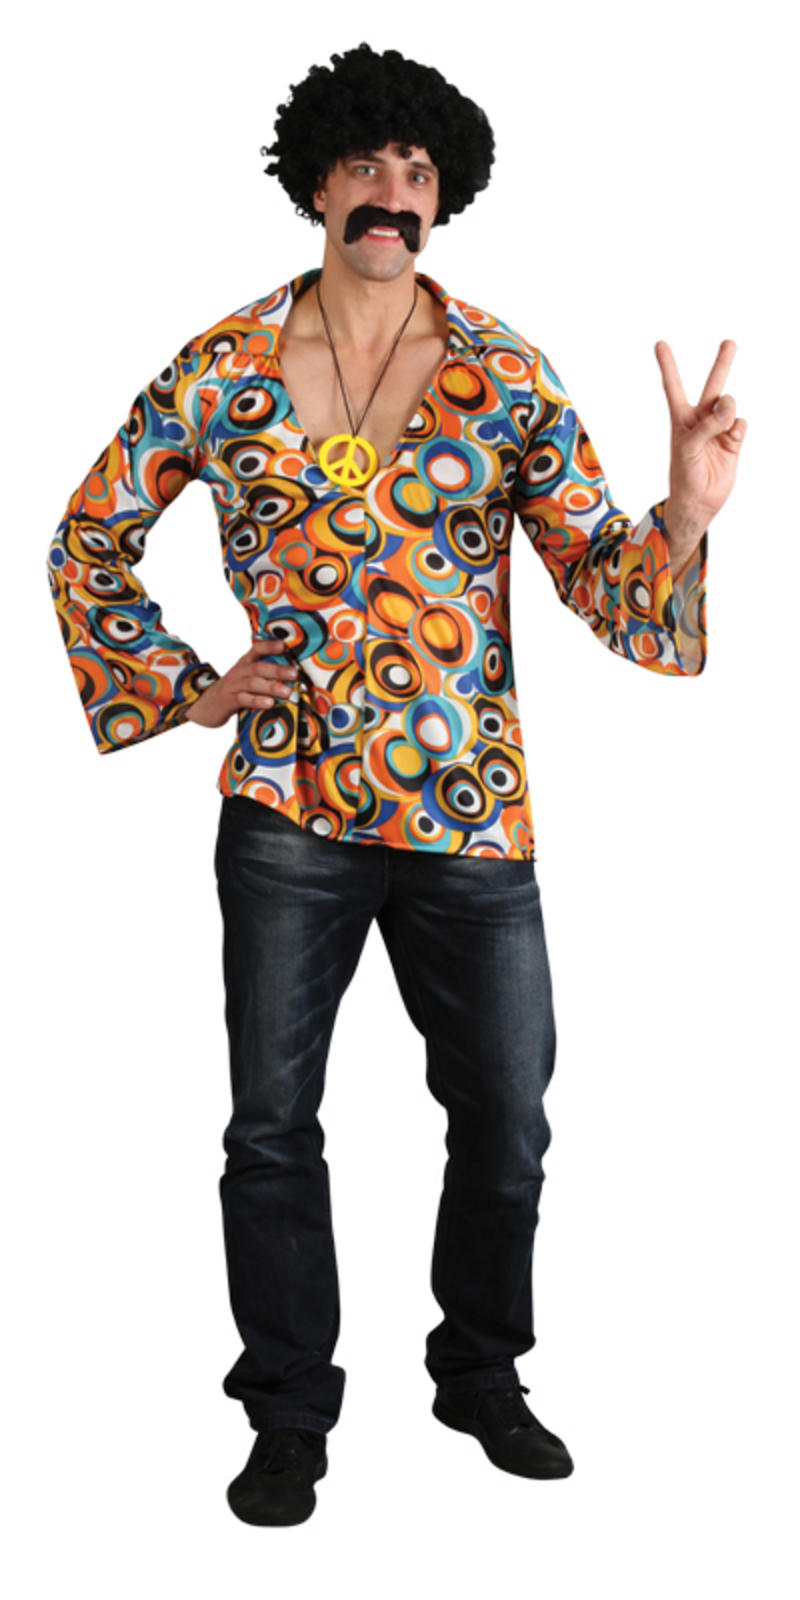 mens 39 groovy flower power hippie shirt fancy dress up party festival costume. Black Bedroom Furniture Sets. Home Design Ideas